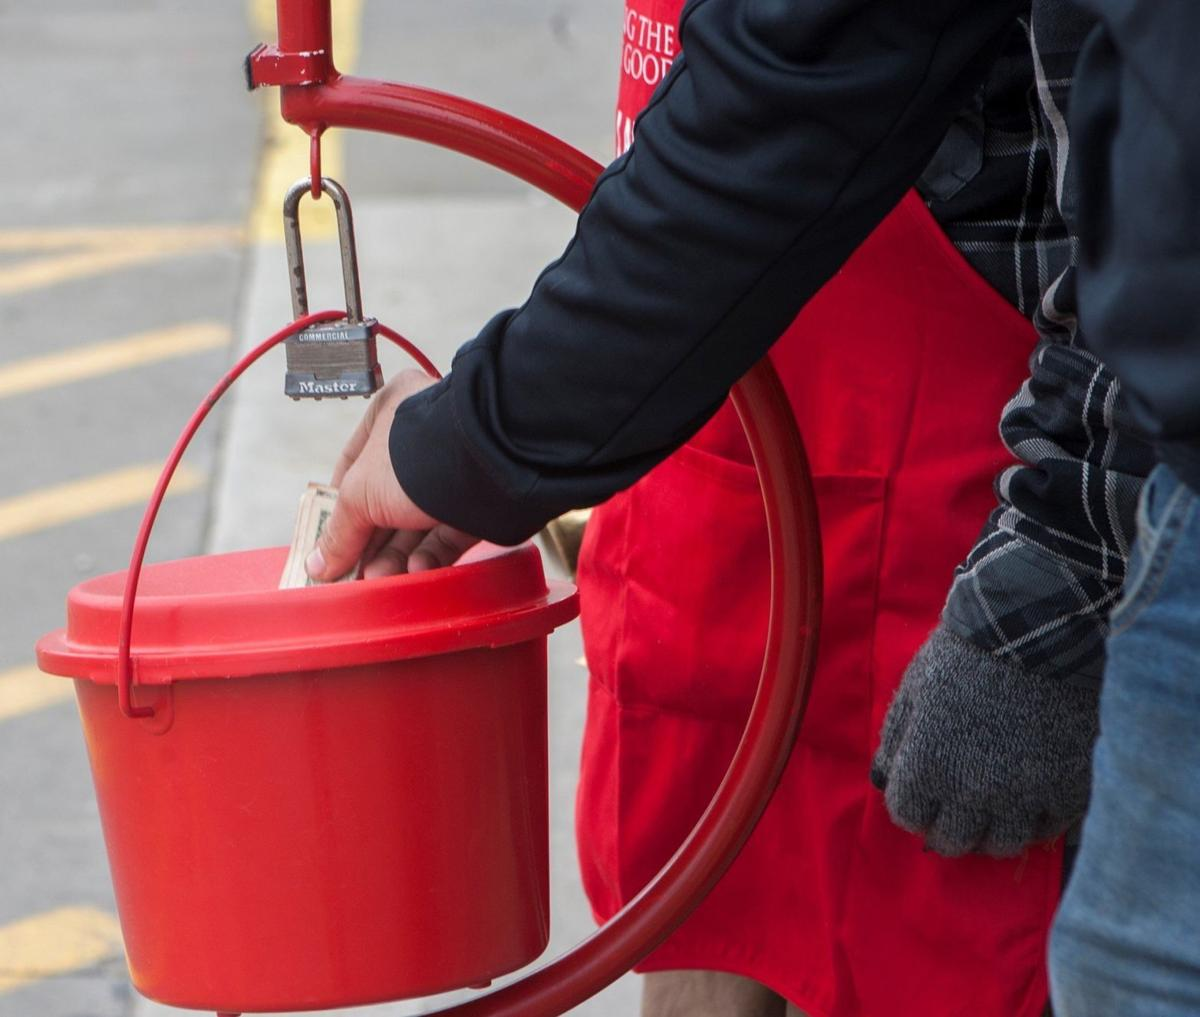 Red kettle file